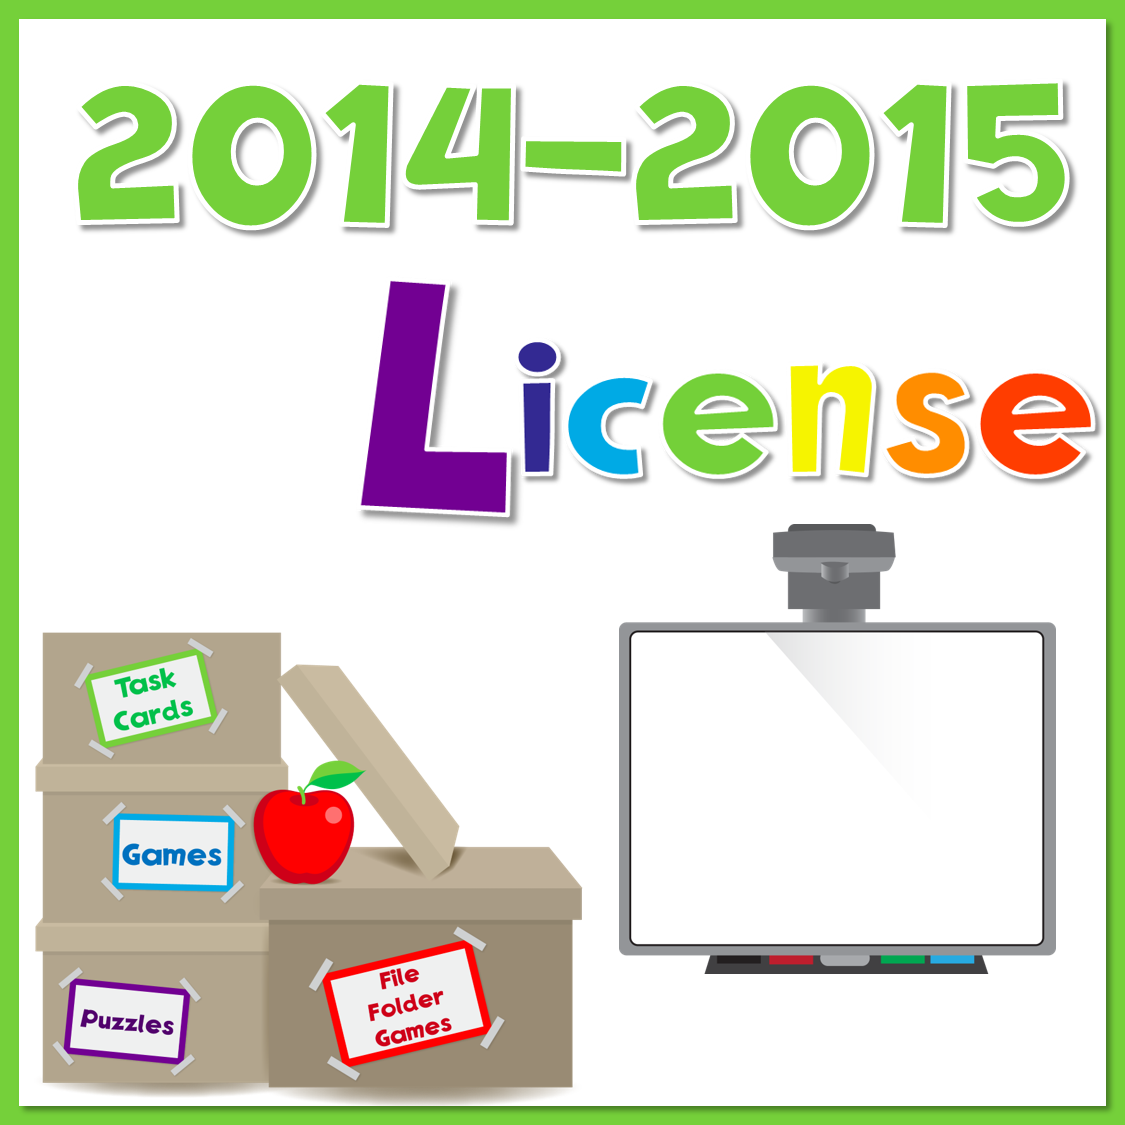 2014-2015 Yearly License